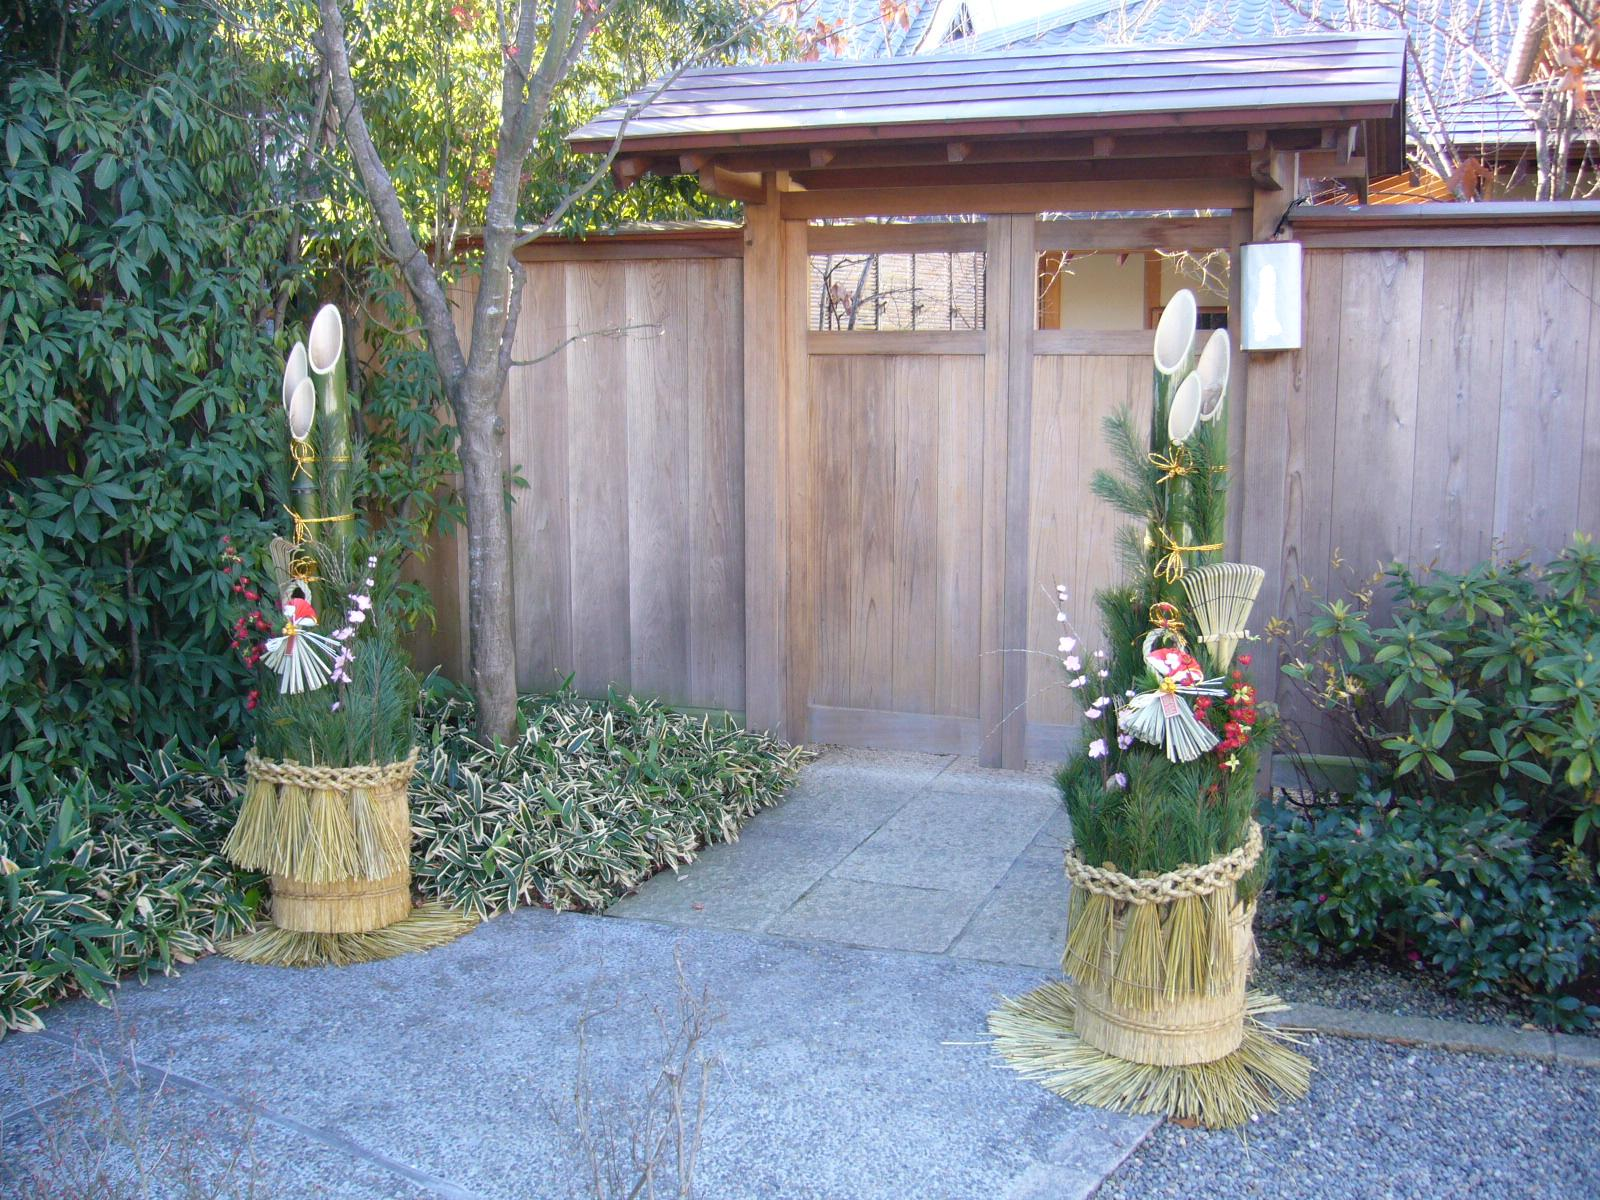 Pair_gate_with_pine_branches_for_the_New_Year,kadomatsu,katori-city,japan